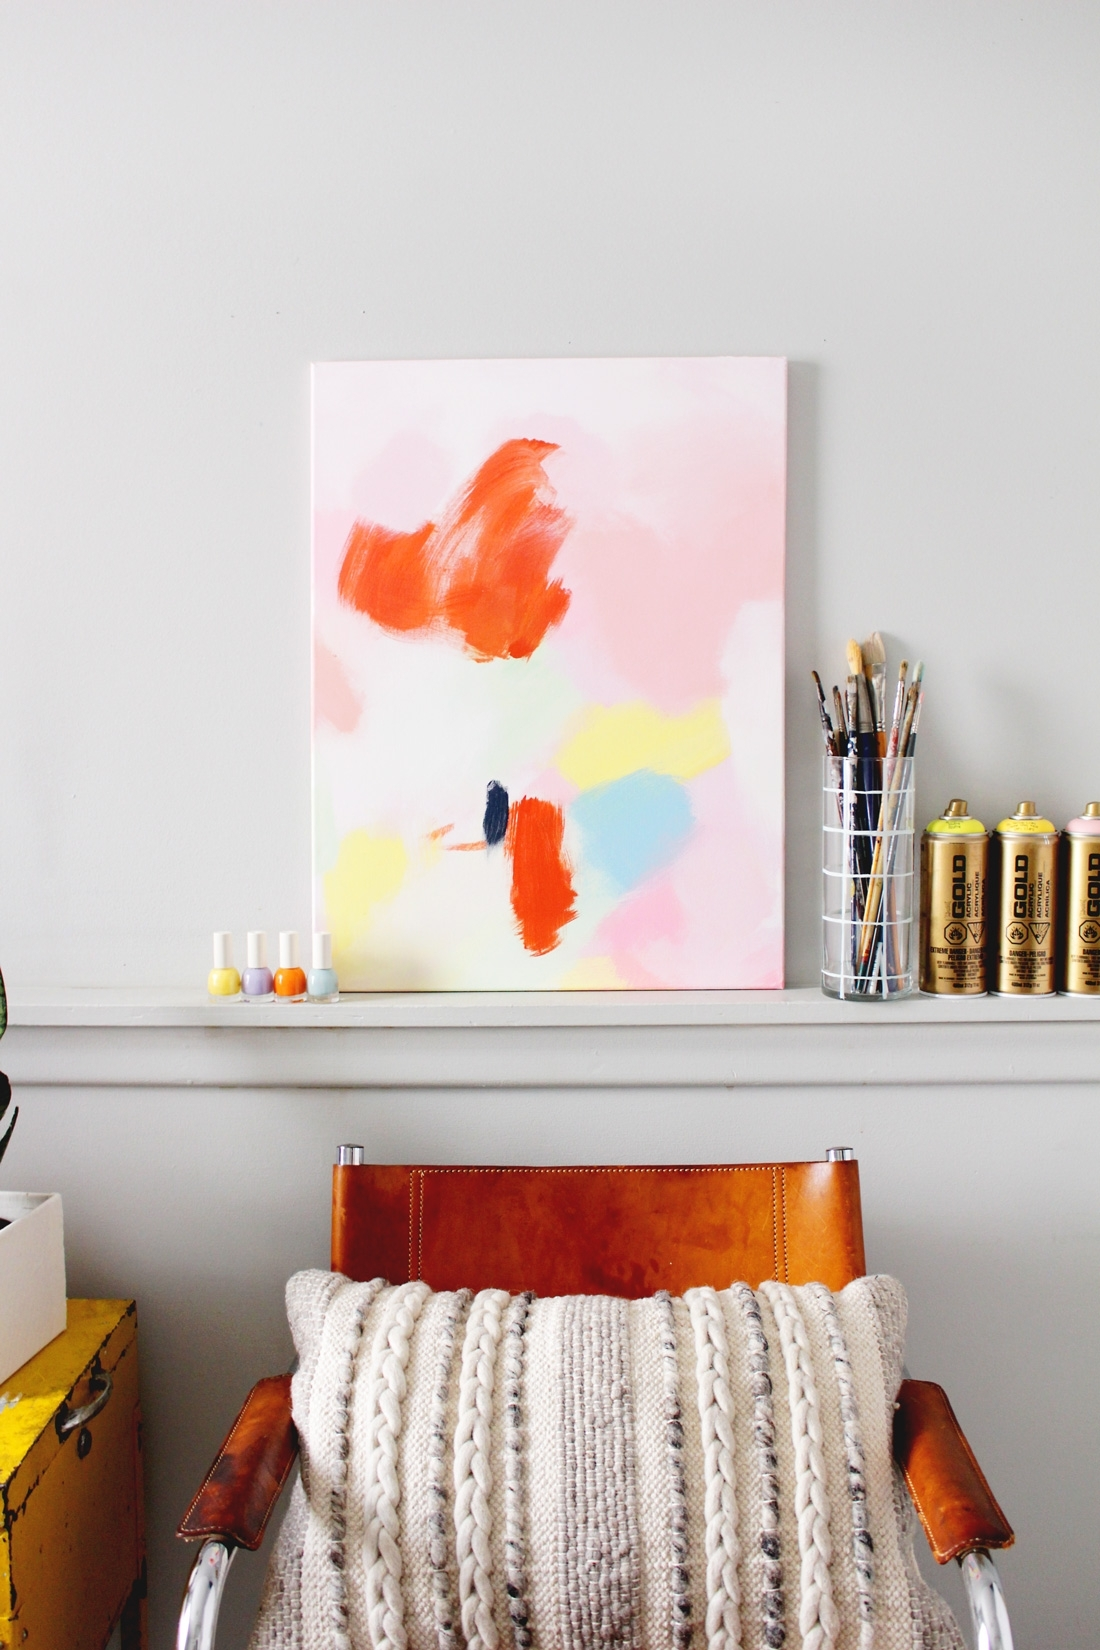 Diy Anthropologie Acrylic Wall Art On Brit + Co | Fish & Bull pertaining to Anthropologie Wall Art (Image 10 of 20)